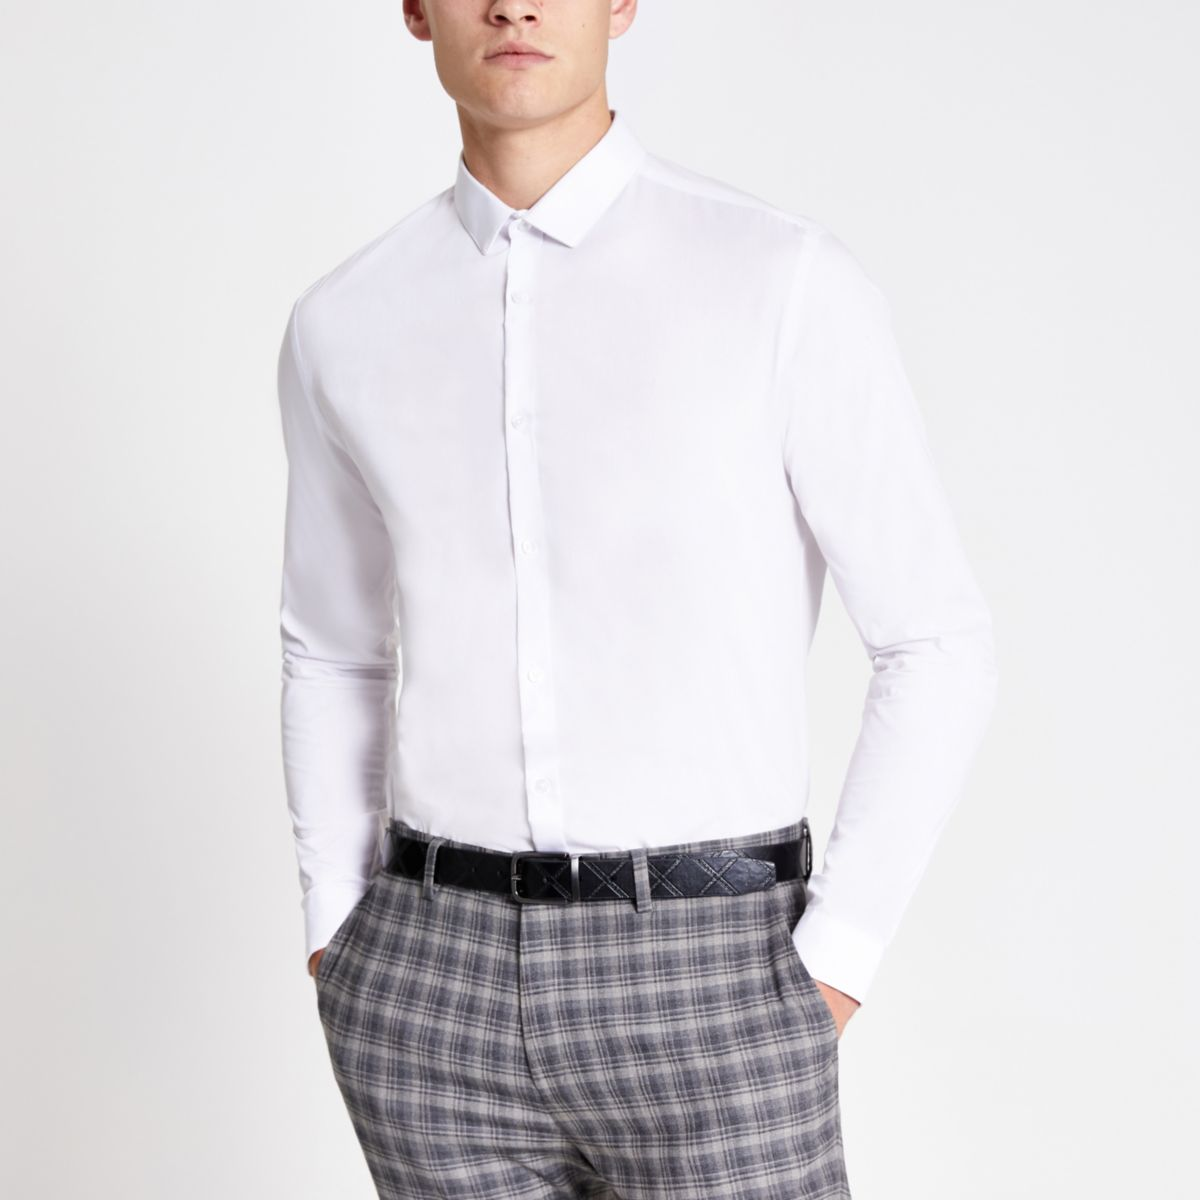 Mens Shirts Shirts For Men Shirts River Island